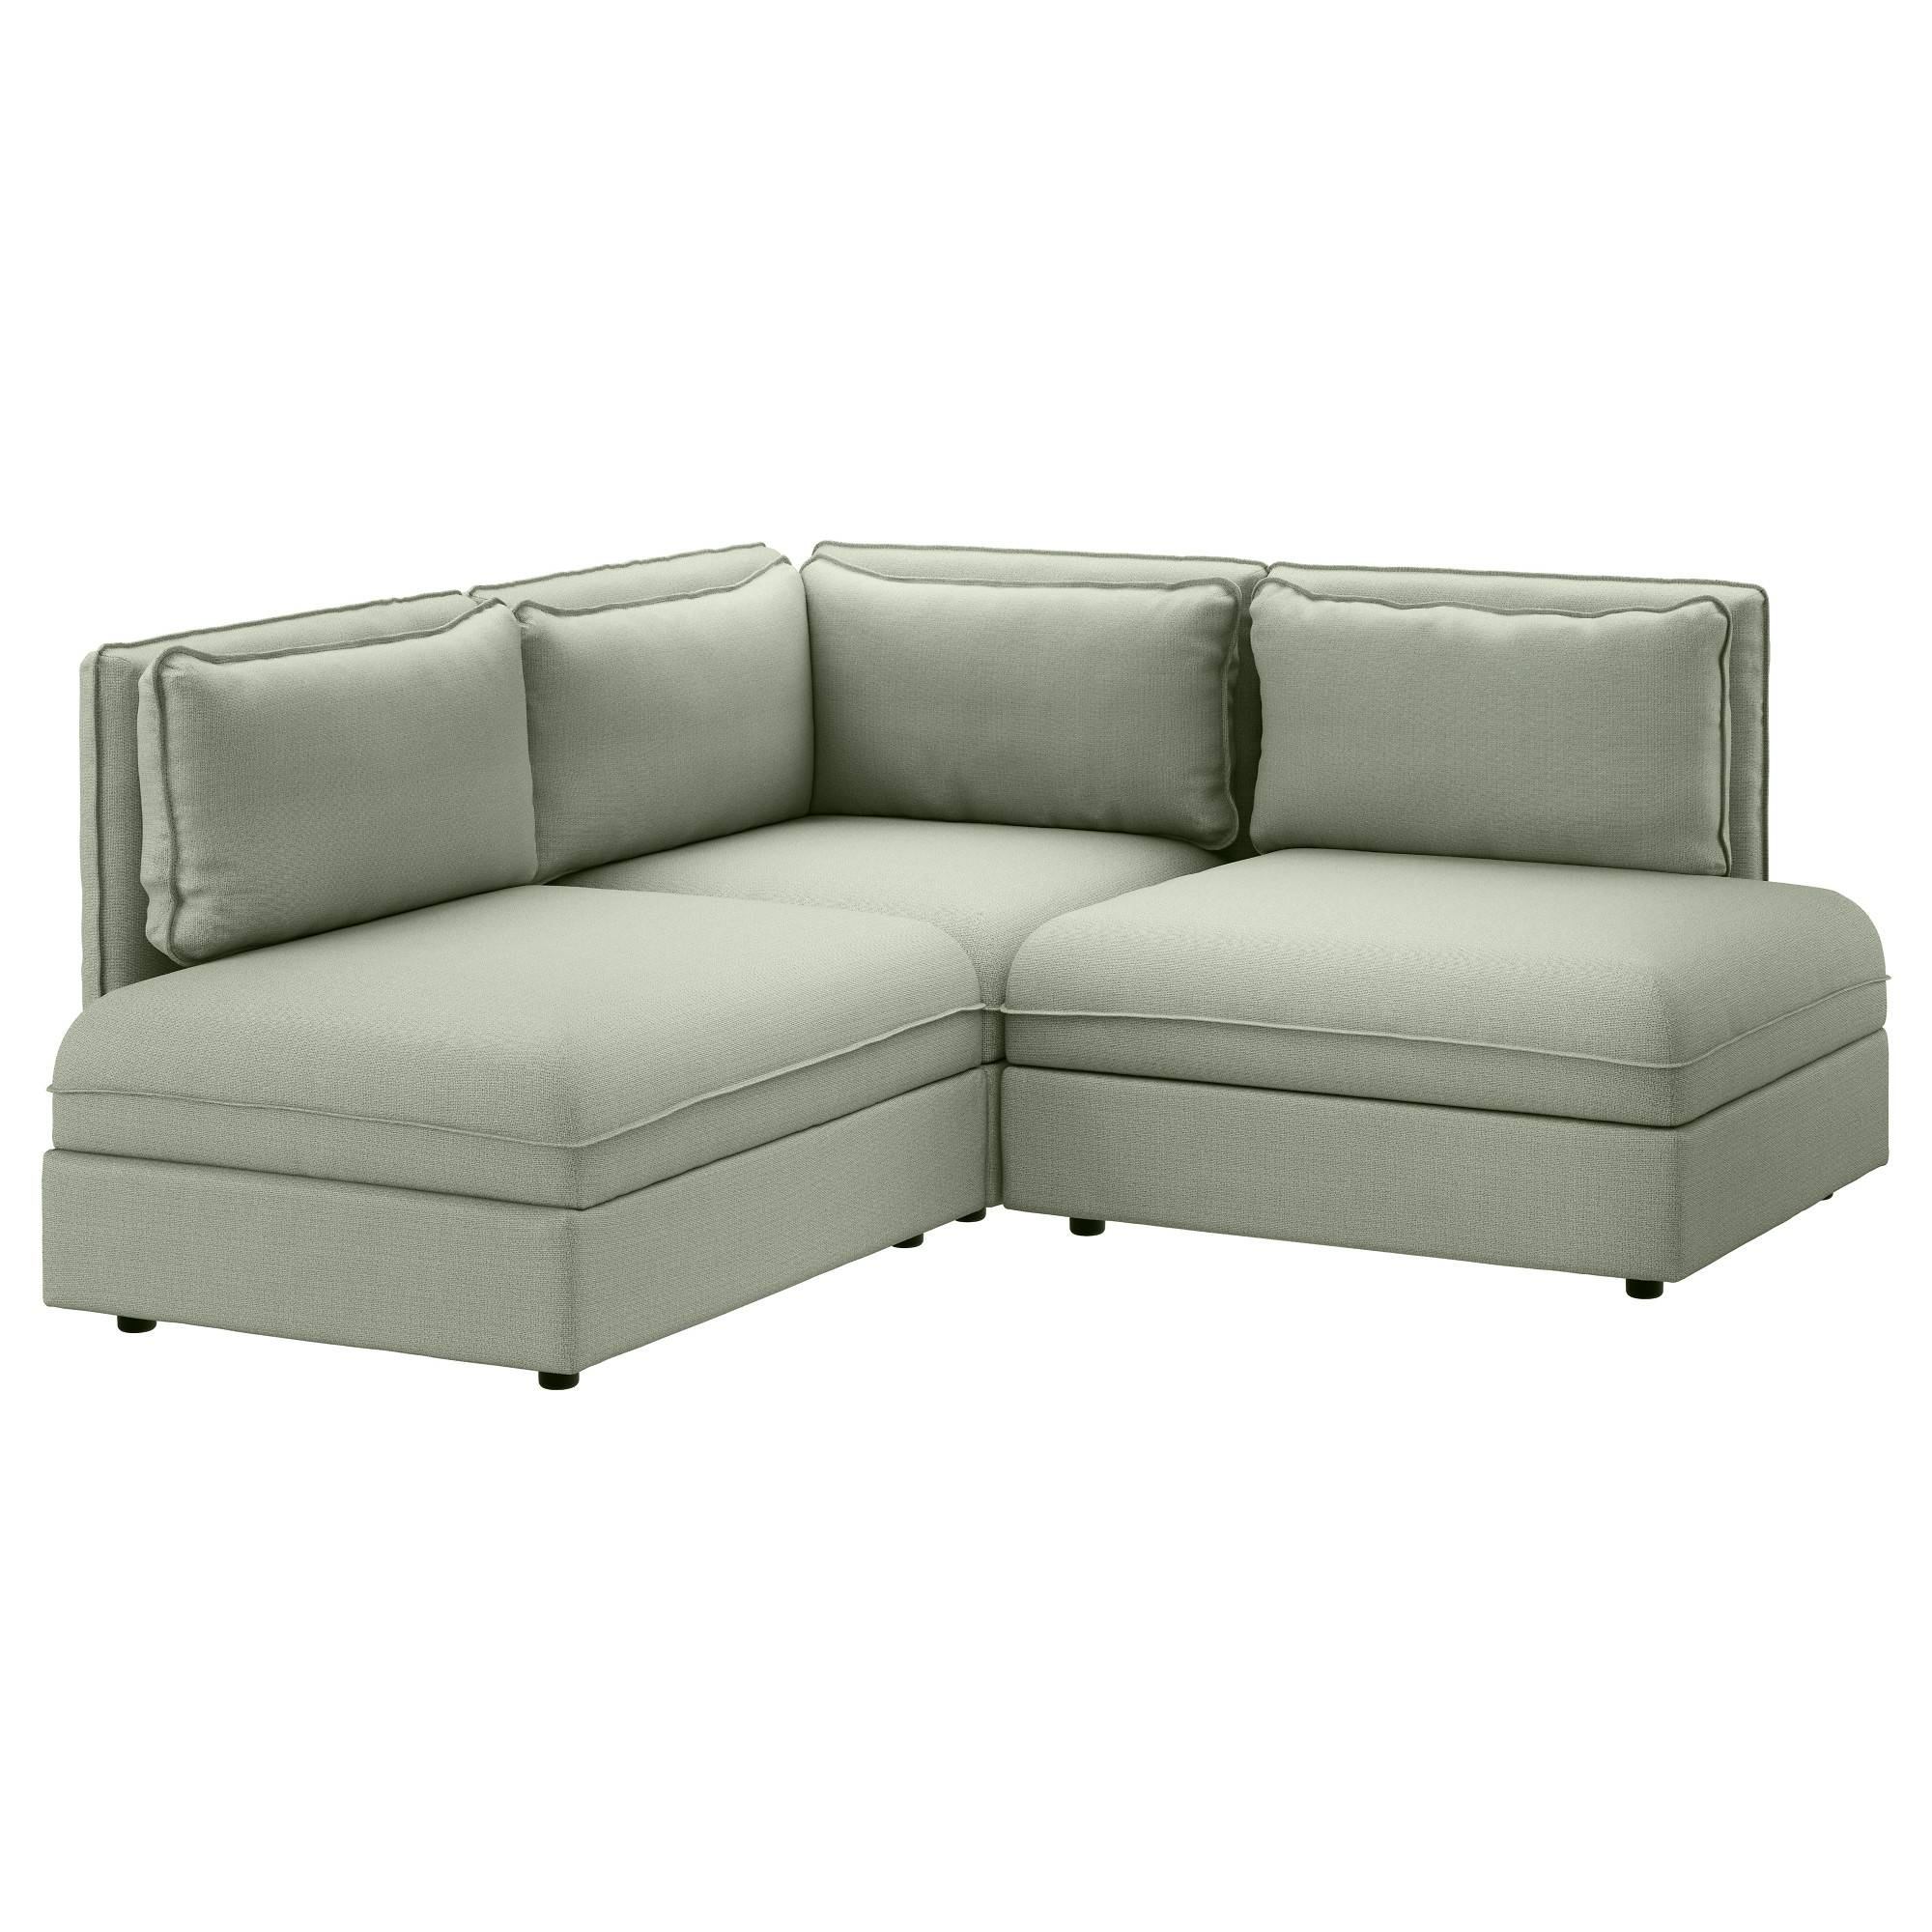 Sectional Sofas & Couches - Ikea with Green Sectional Sofa With Chaise (Image 19 of 30)